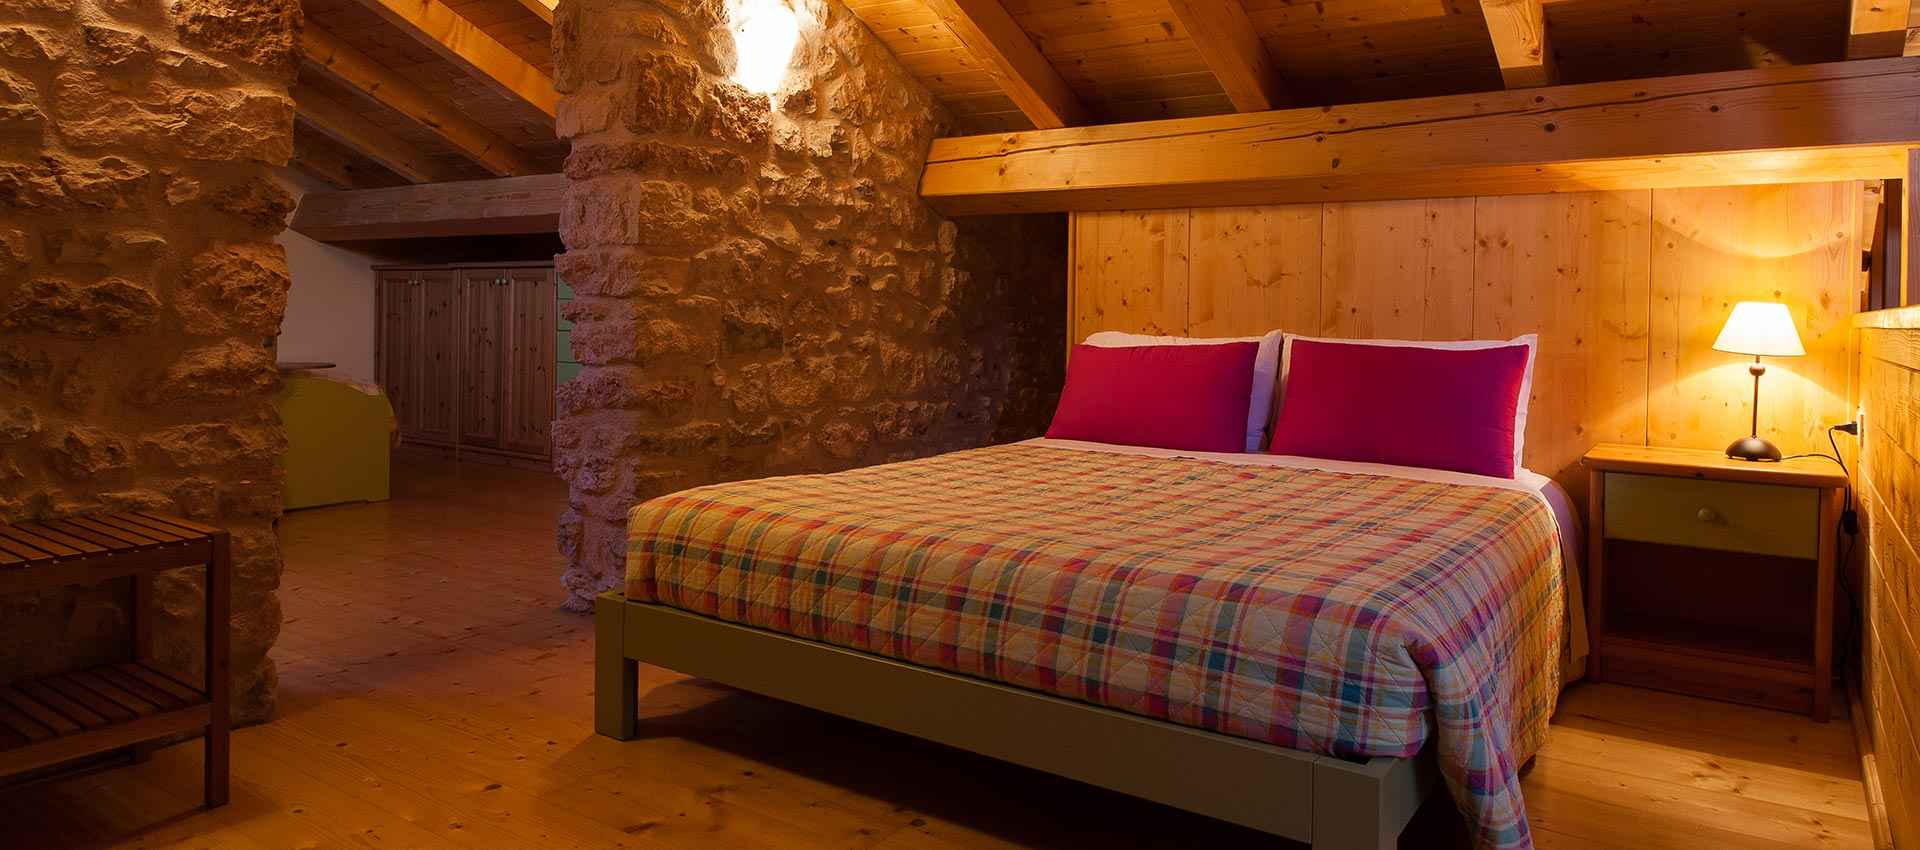 Il Bed and Breakfast a Mezzaselva